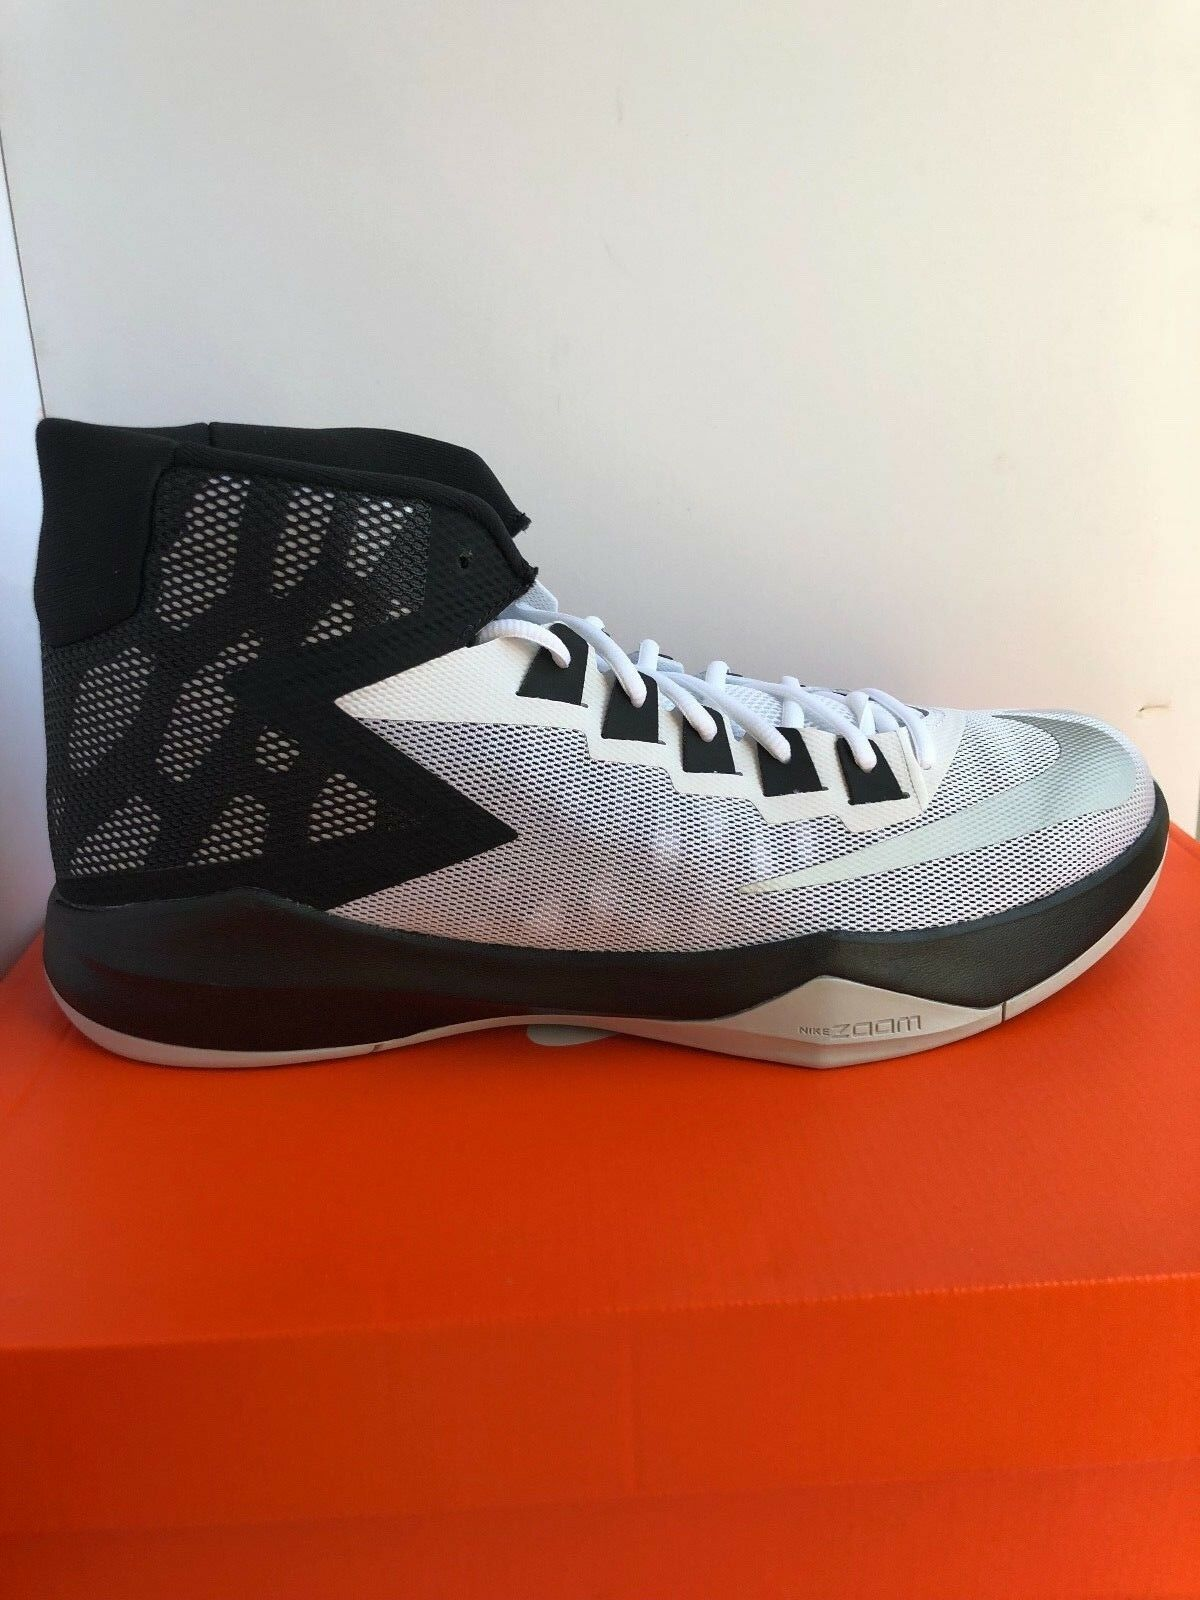 NIKE MEN ZOOM DEVOSION BASKETBALL SHOES Price reduction The most popular shoes for men and women